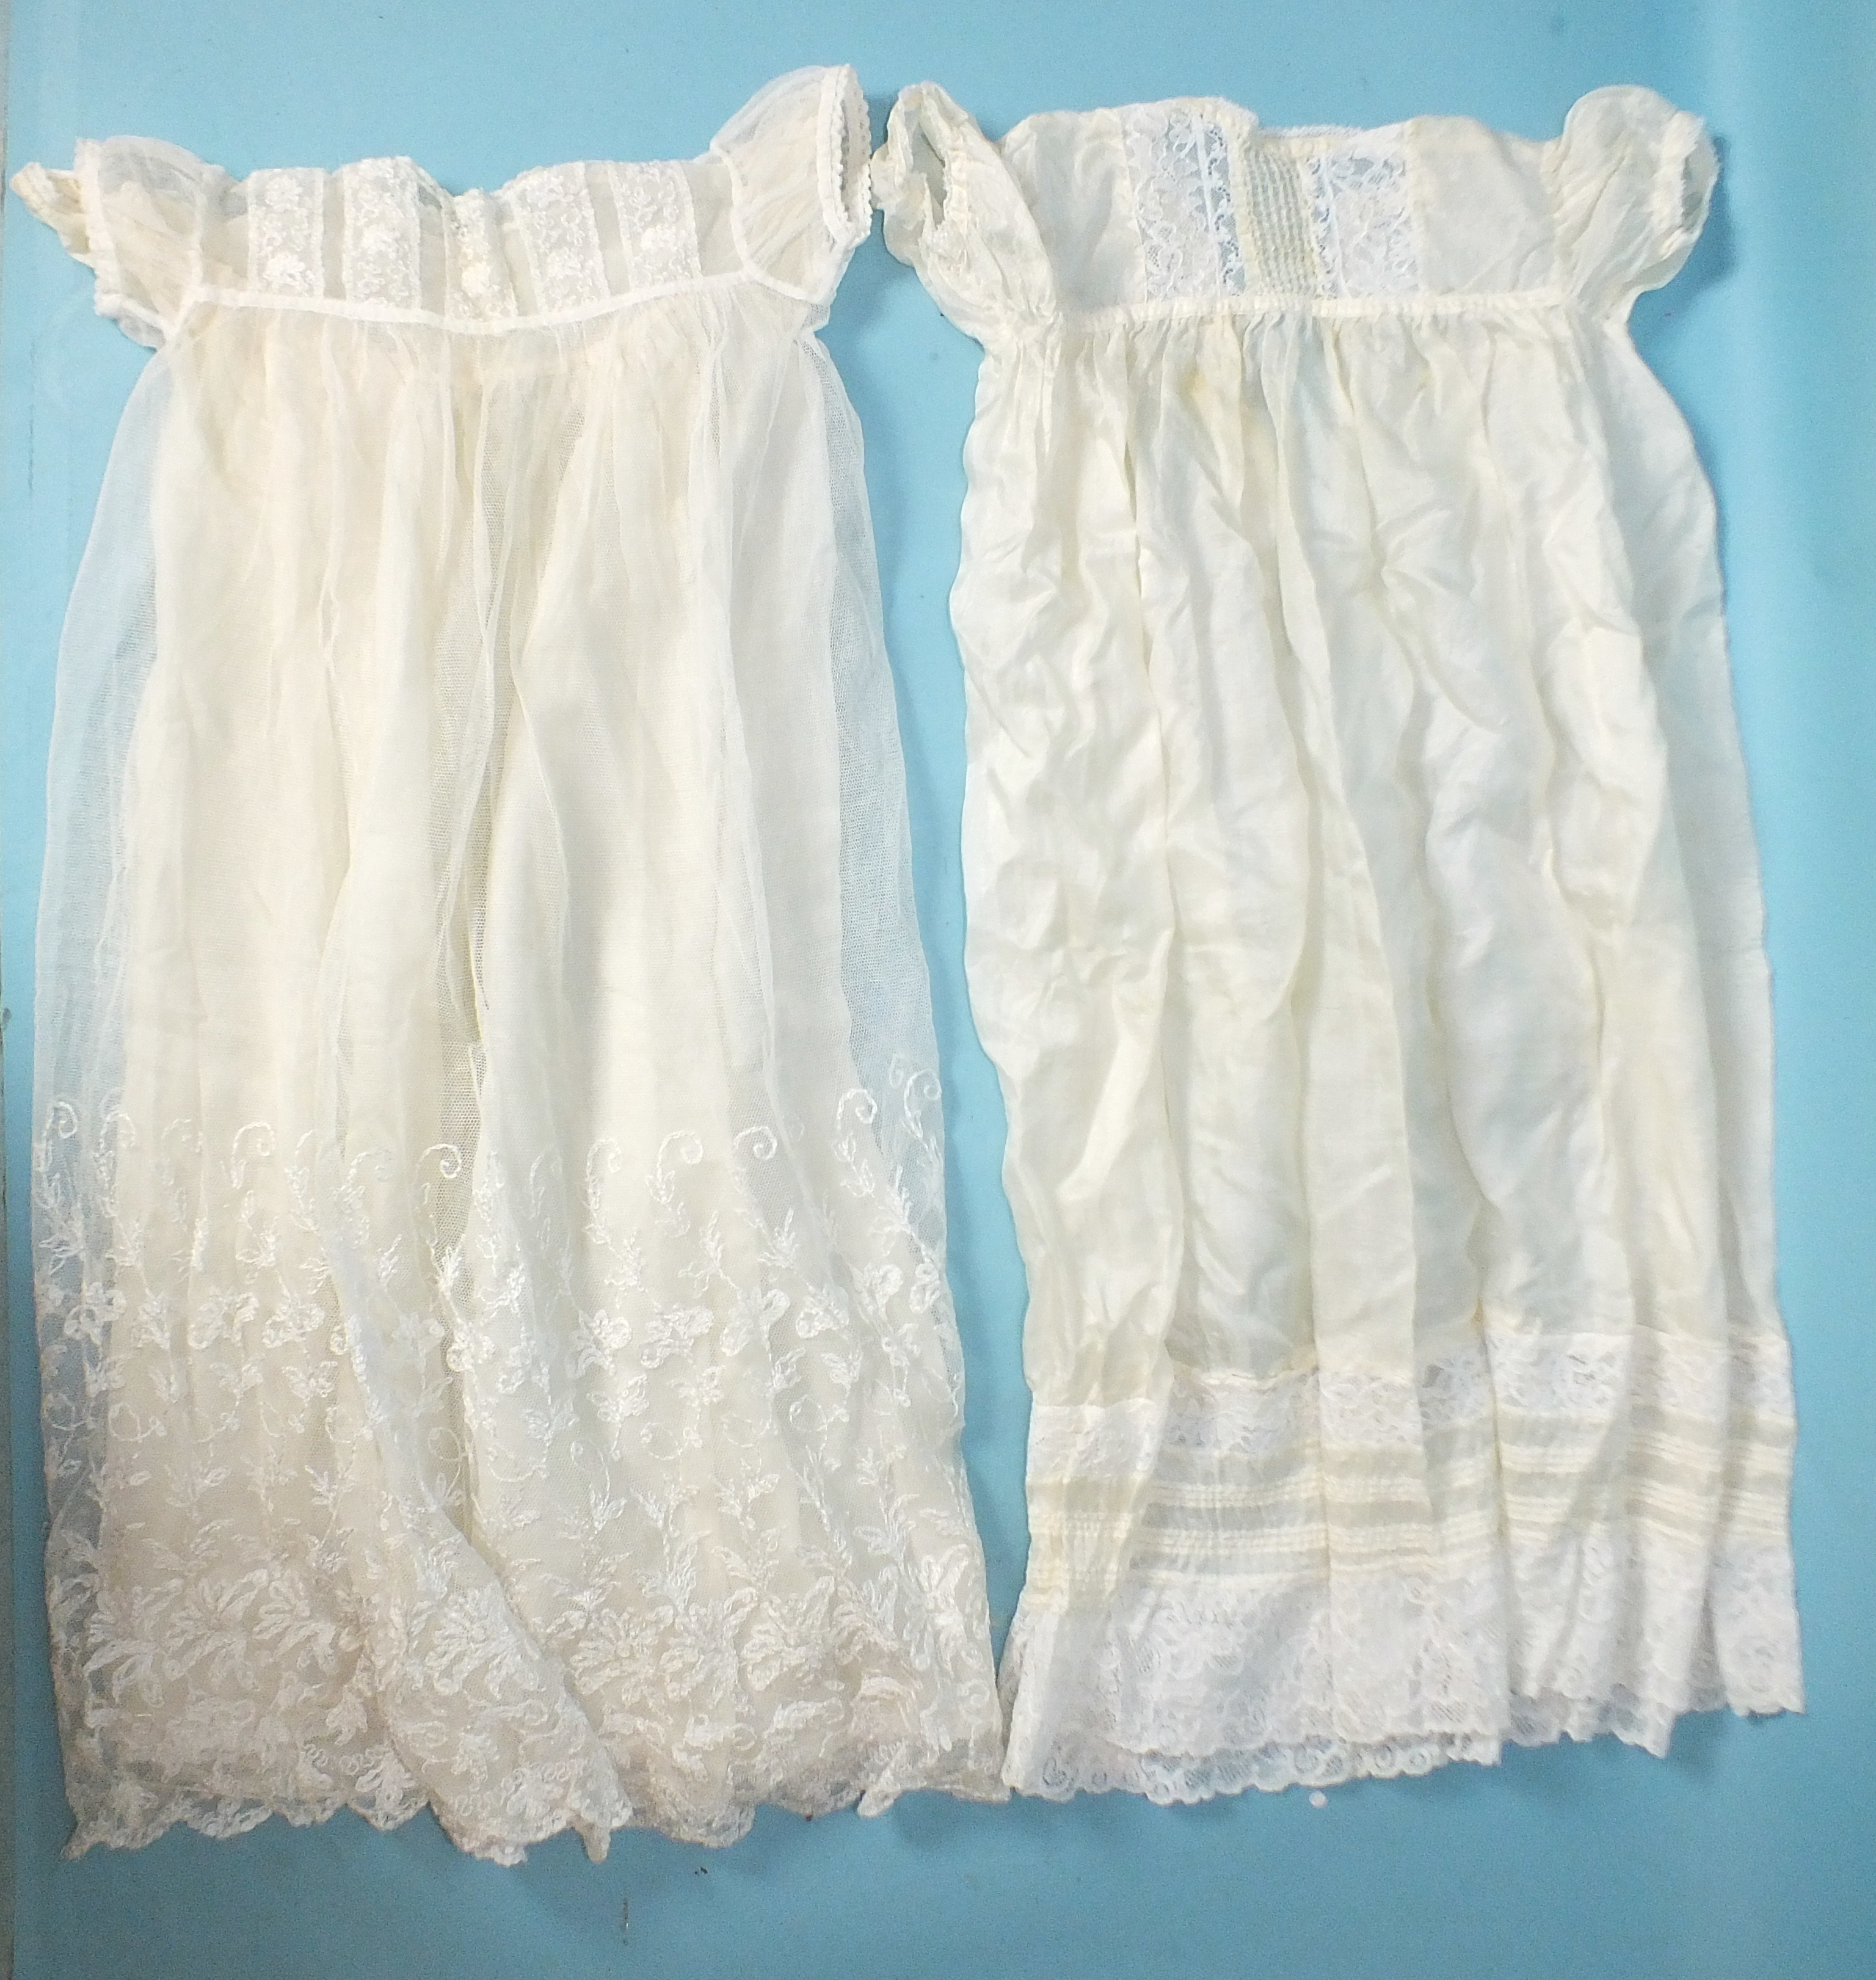 Lot 520 - An early-20th century baby dress of net, needle-run with flowers on the bodice and hem, over a